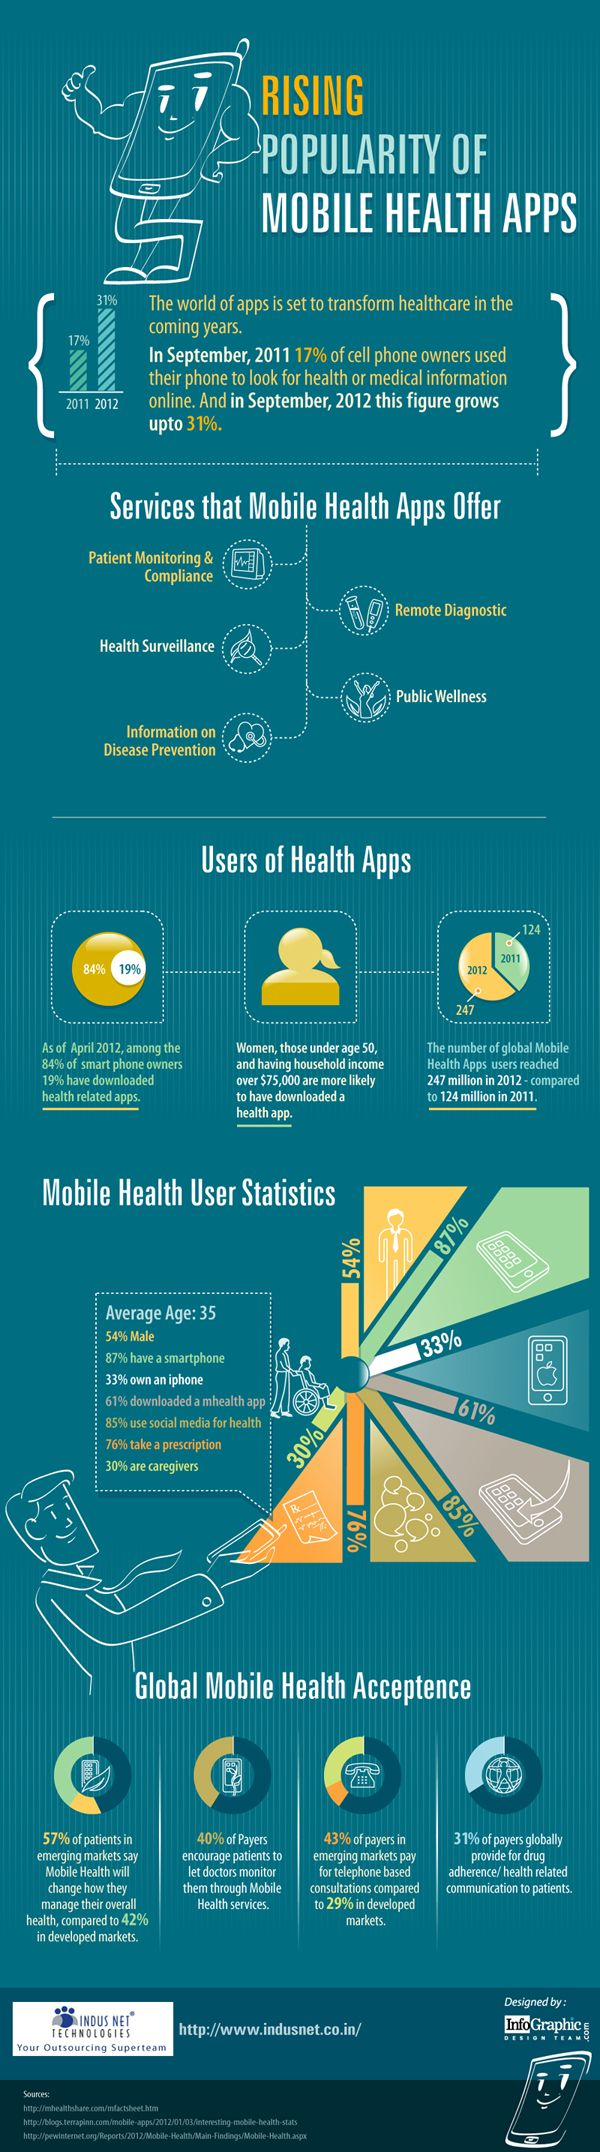 """Use of mobile health apps is rising in a fast pace.  This Infographic on """"Rising Popularity of Mobile Health Apps"""" published by Indus Net Technolo"""